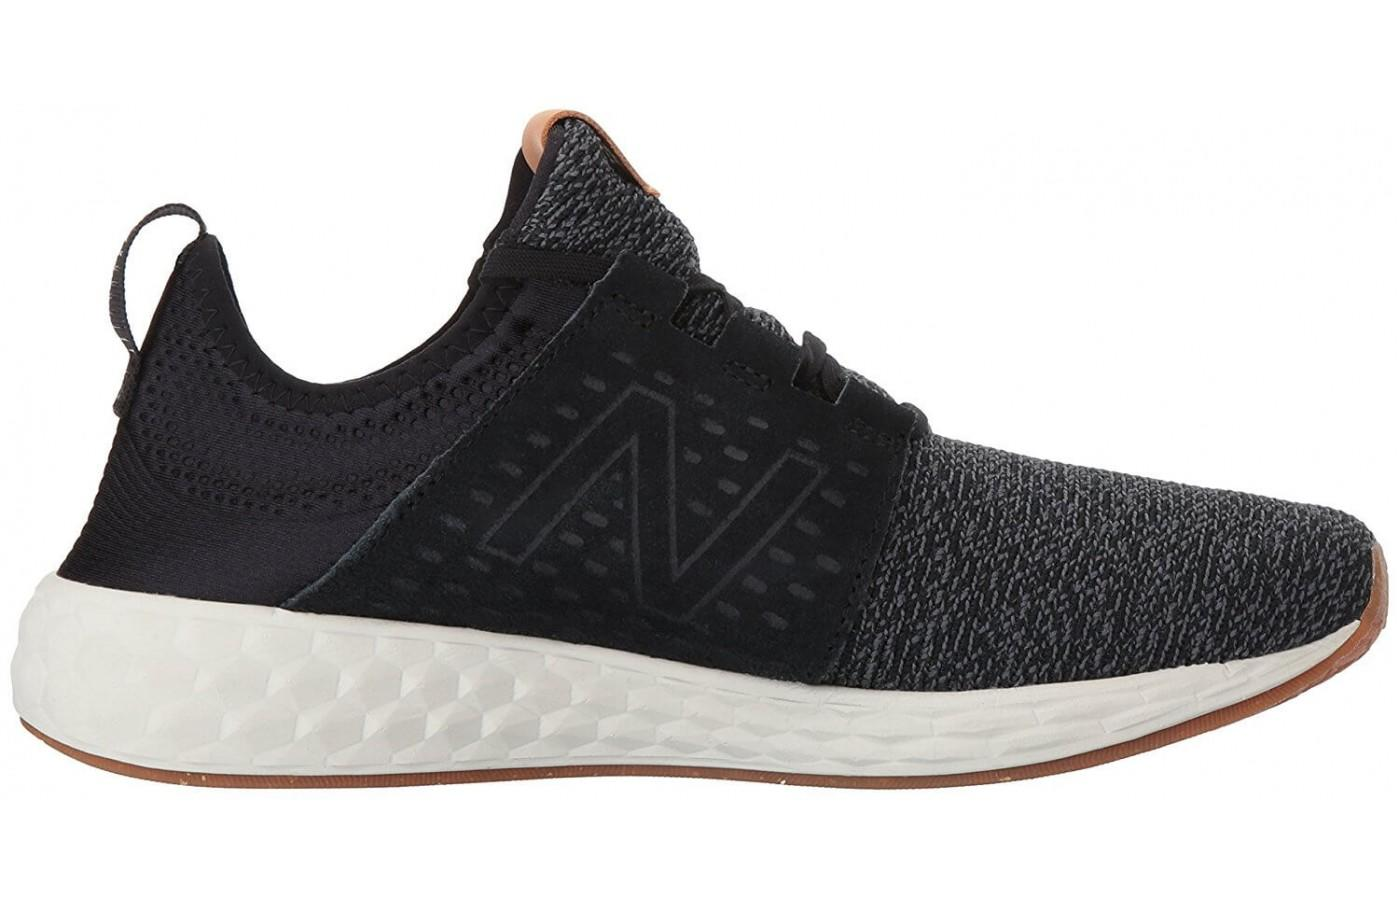 the New Balance Fresh Foam Cruz has a low profile with a blown rubber outsole